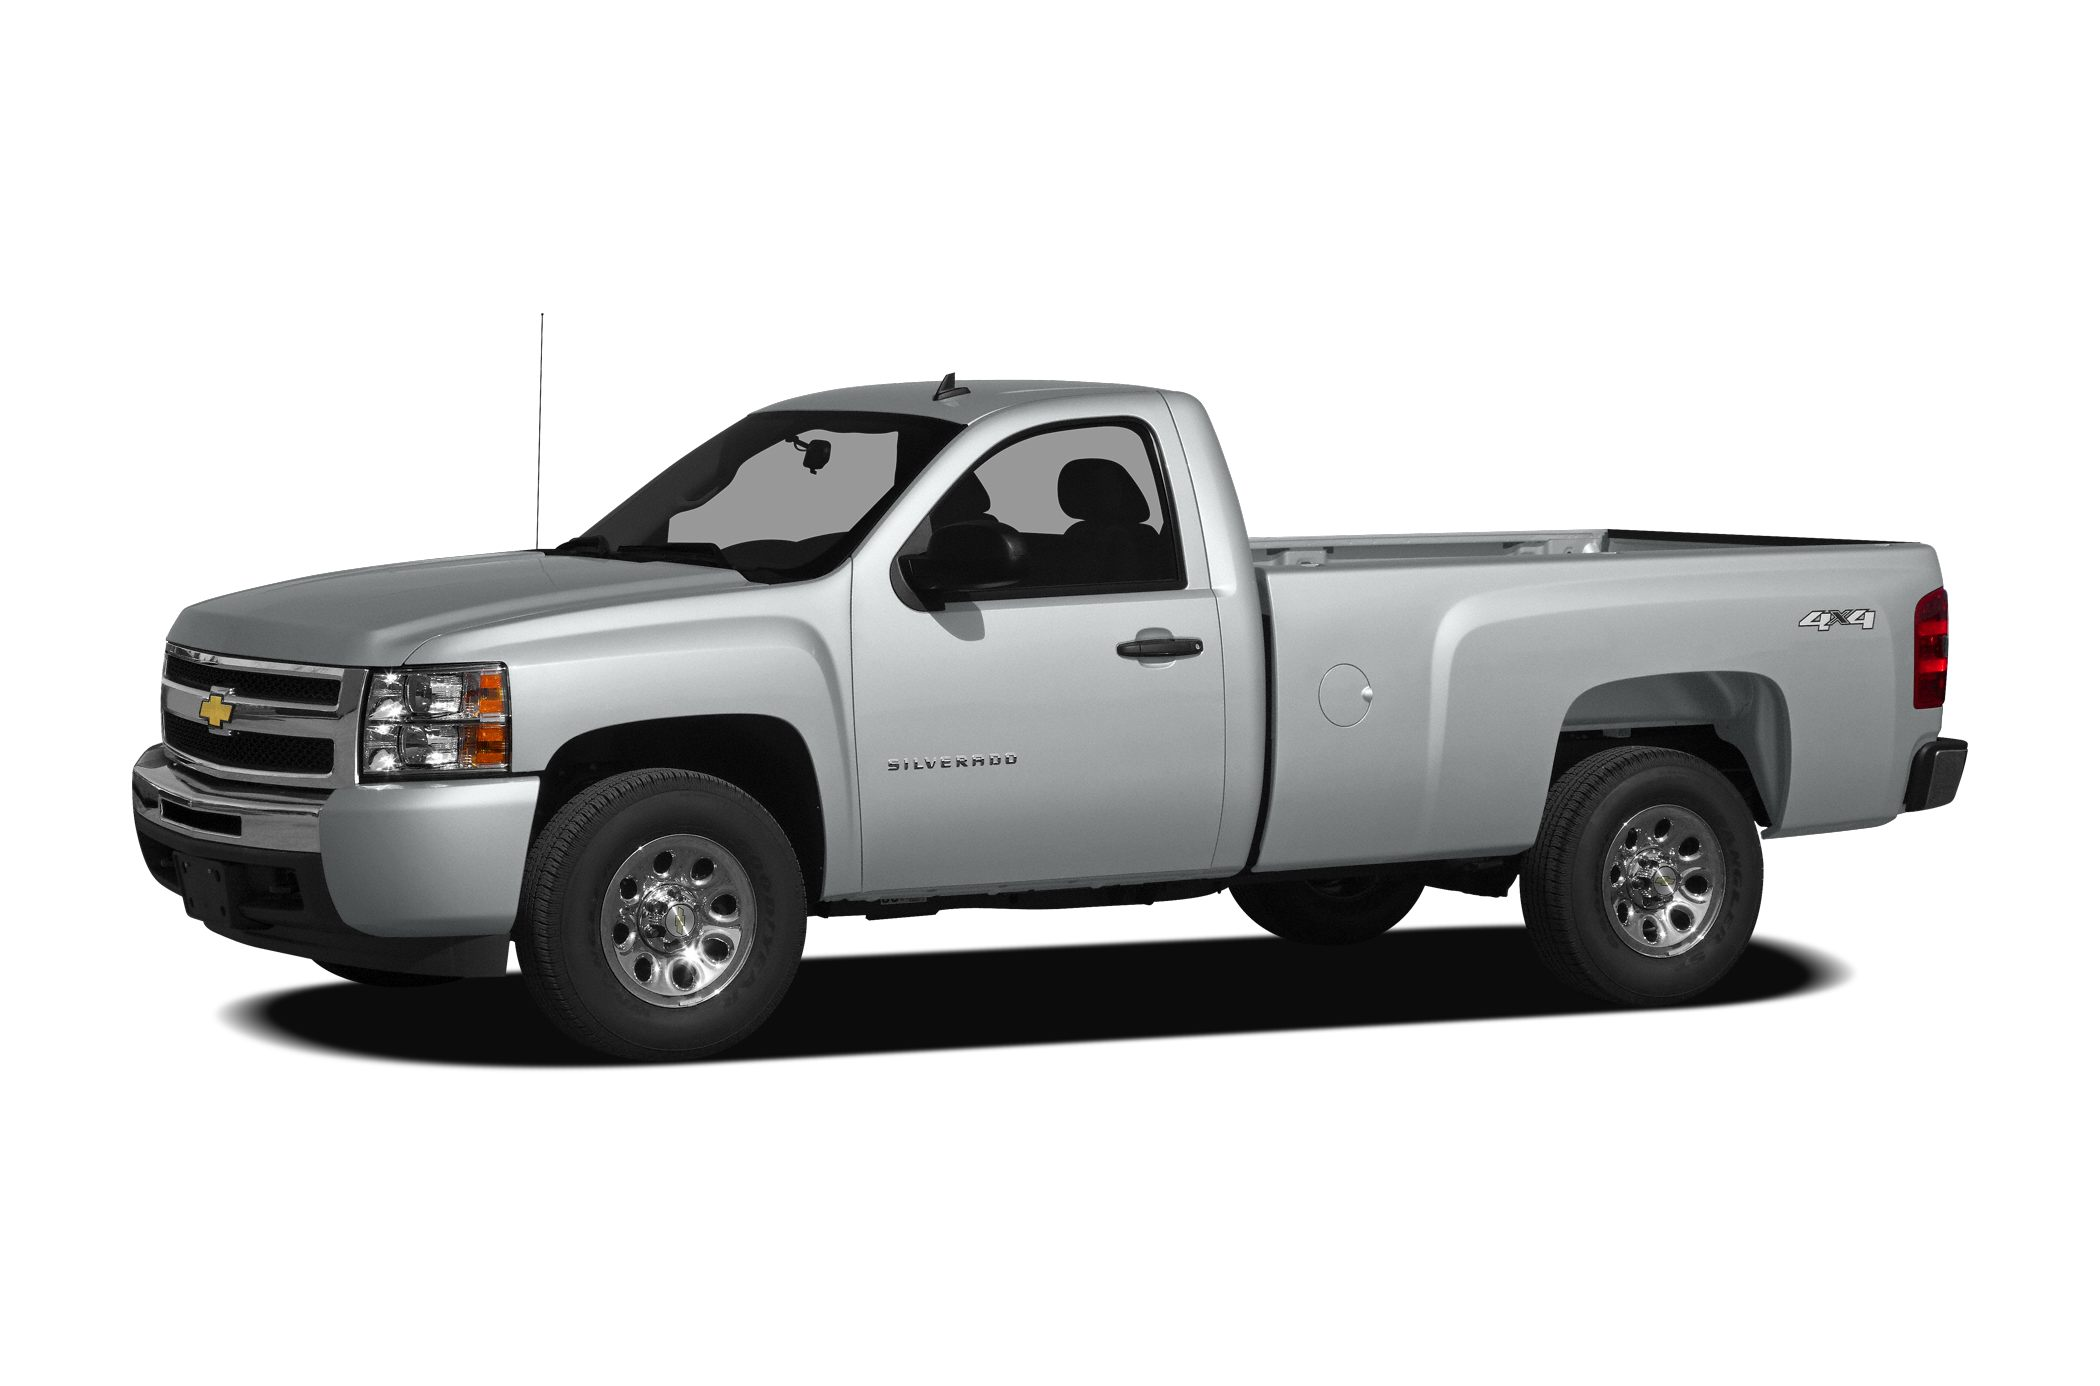 2010 Chevrolet Silverado 1500 Work Truck Regular Cab Pickup for sale in Bolingbrook for $0 with 41,605 miles